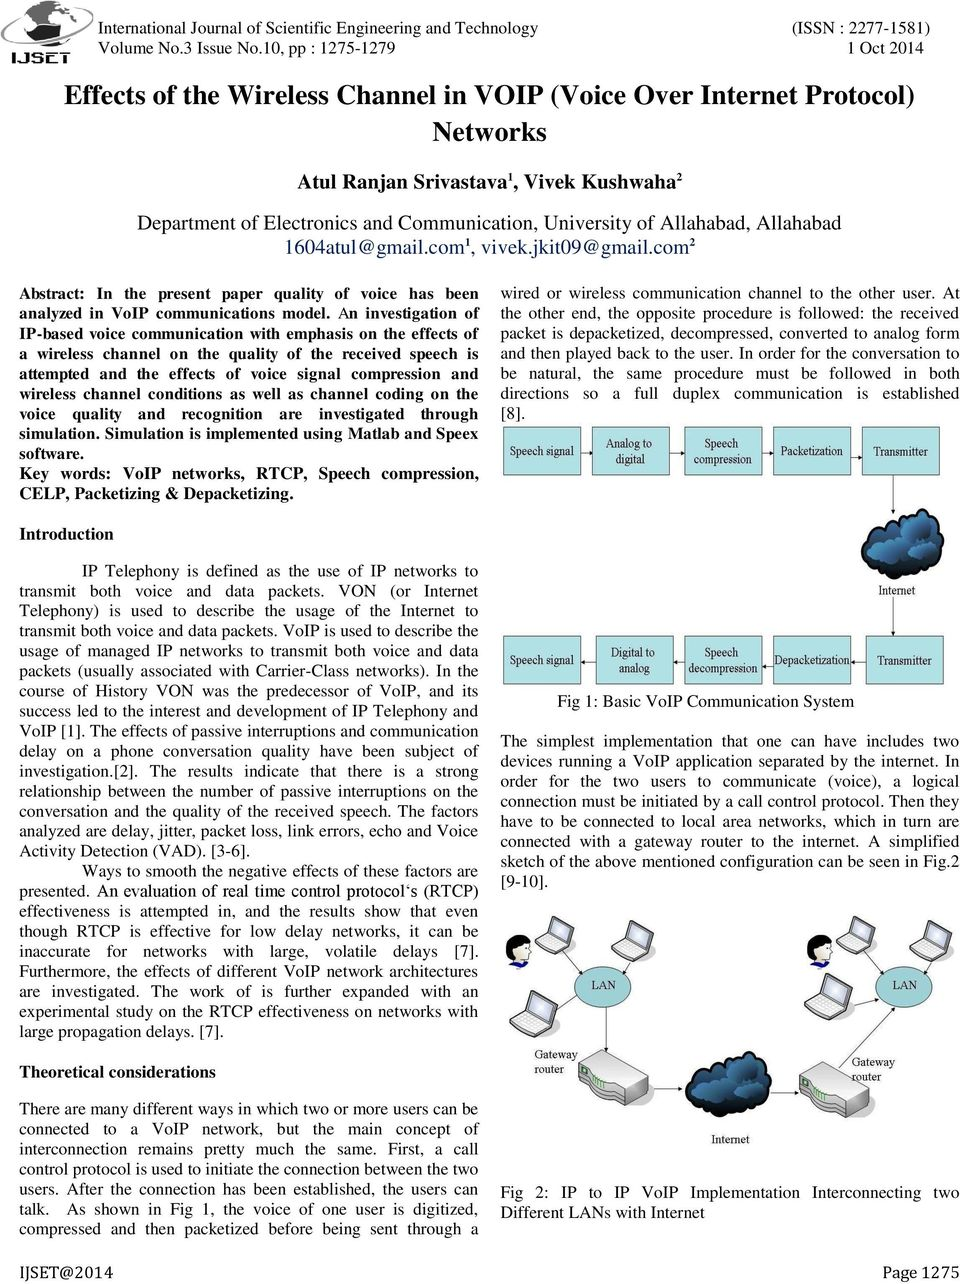 An investigation of IP-based voice communication with emphasis on the effects of a wireless channel on the quality of the received speech is attempted and the effects of voice signal compression and